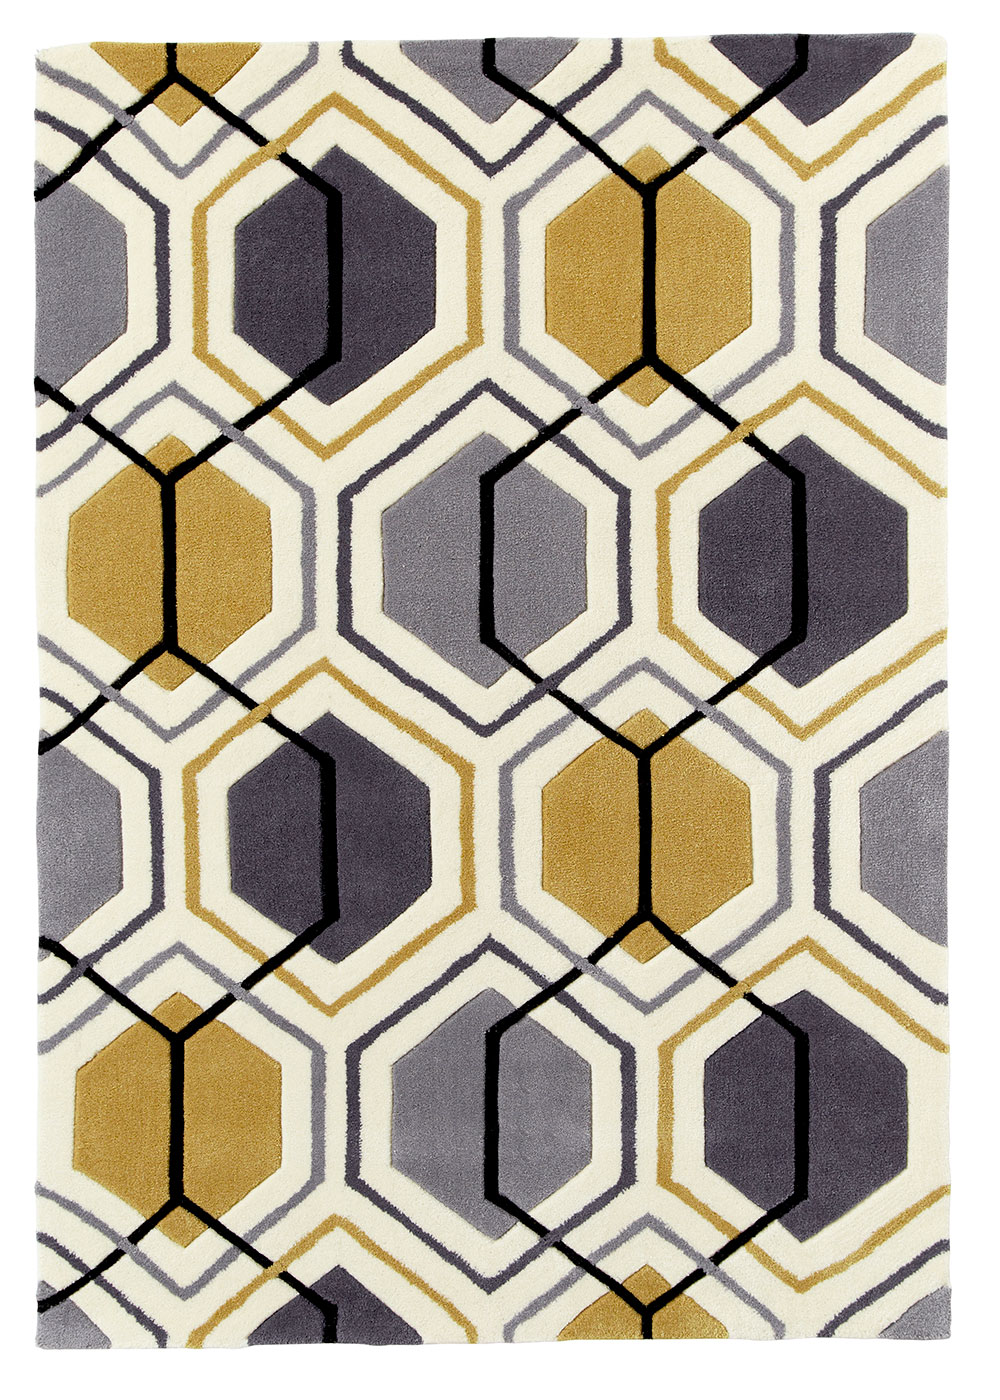 design factory fabric leather gray plus rugs rug living area shag offer and grey we yellow